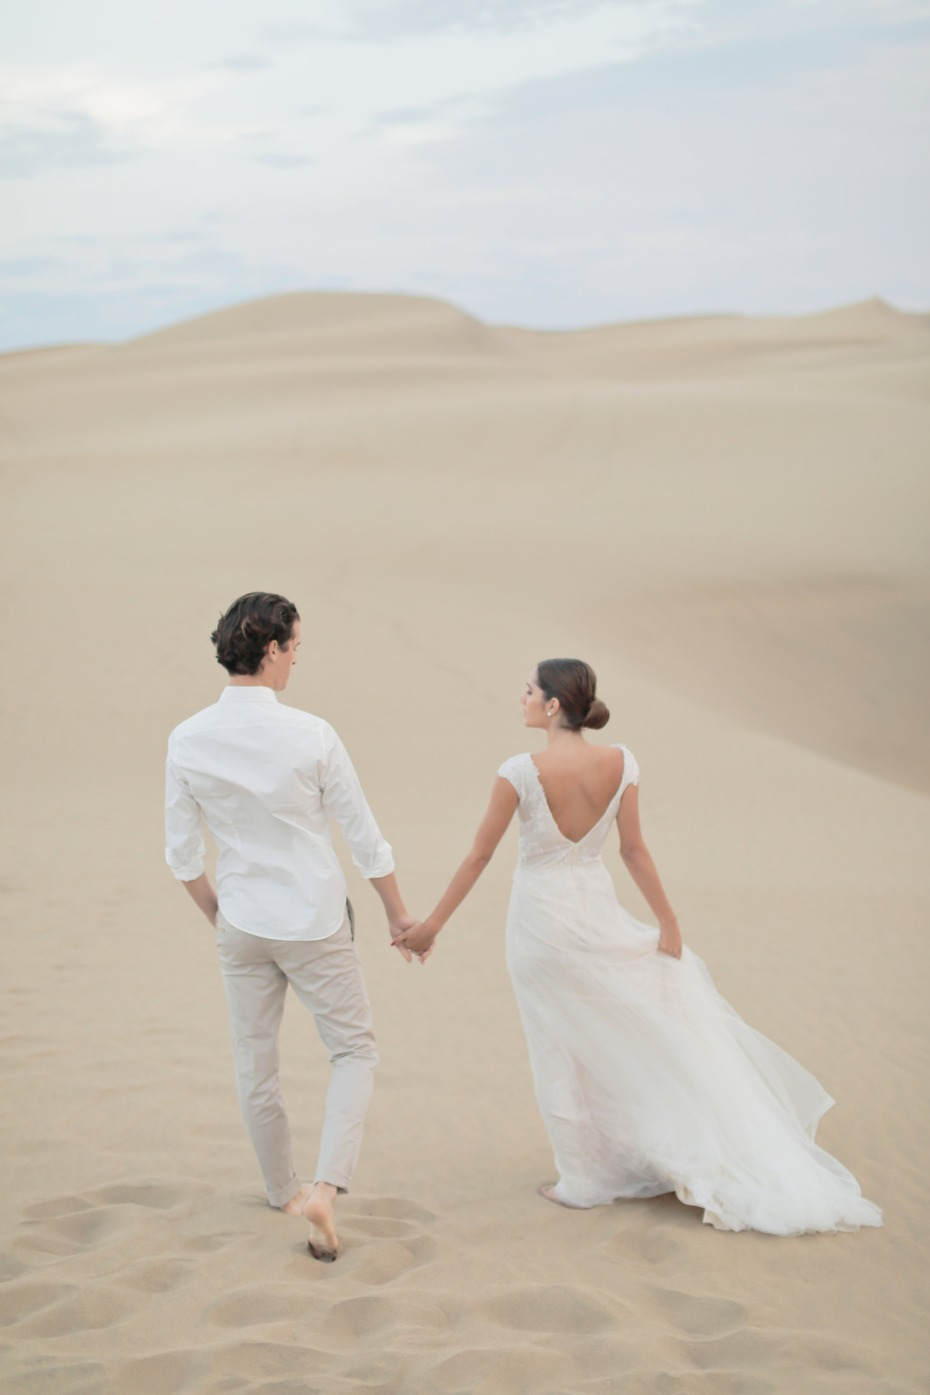 Desert wedding and honeymoon in Spain